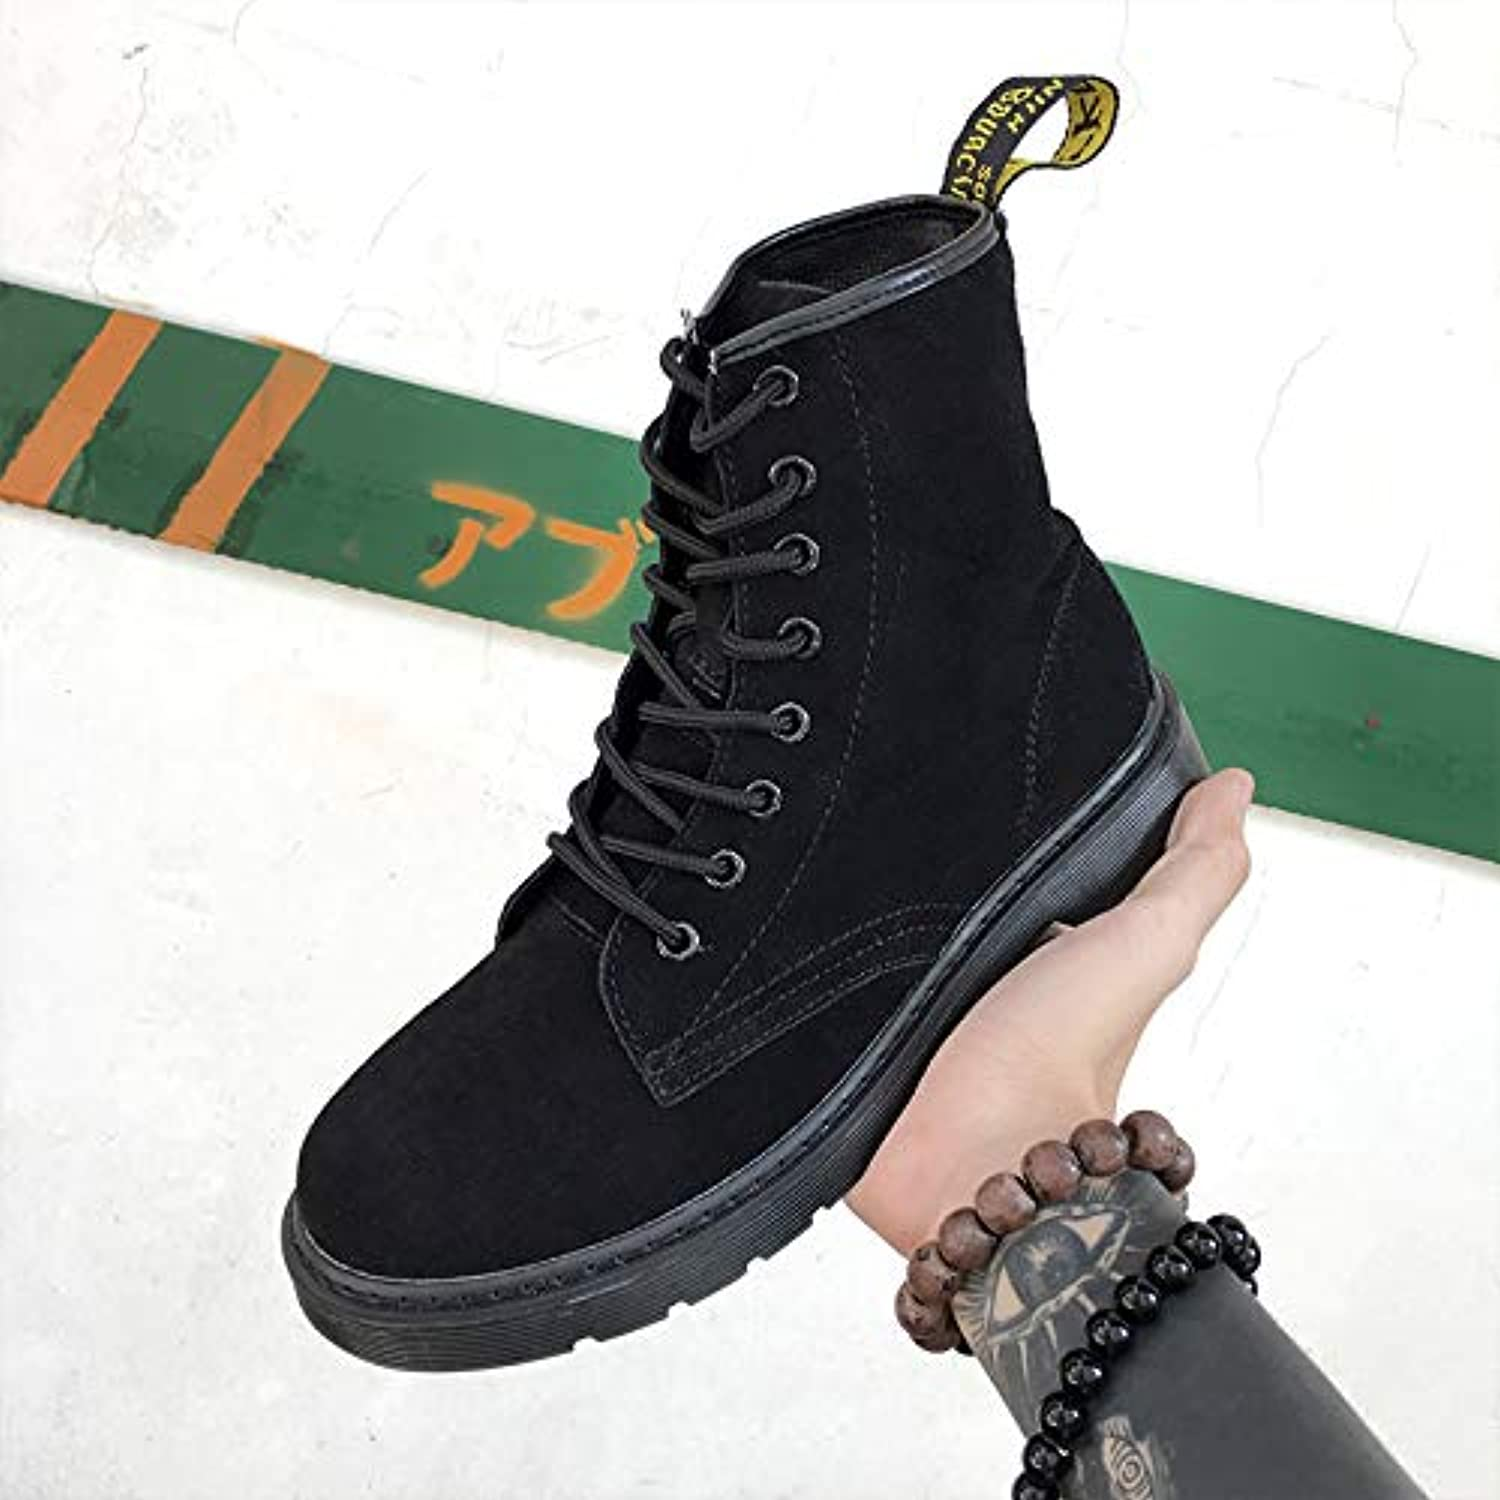 ZyuQ Ankle boots Martin Boots Men'S Booties In The Summer To Help Boots Men'S High-Cut Tooling Boots Autumn Martin shoes Men'S Black